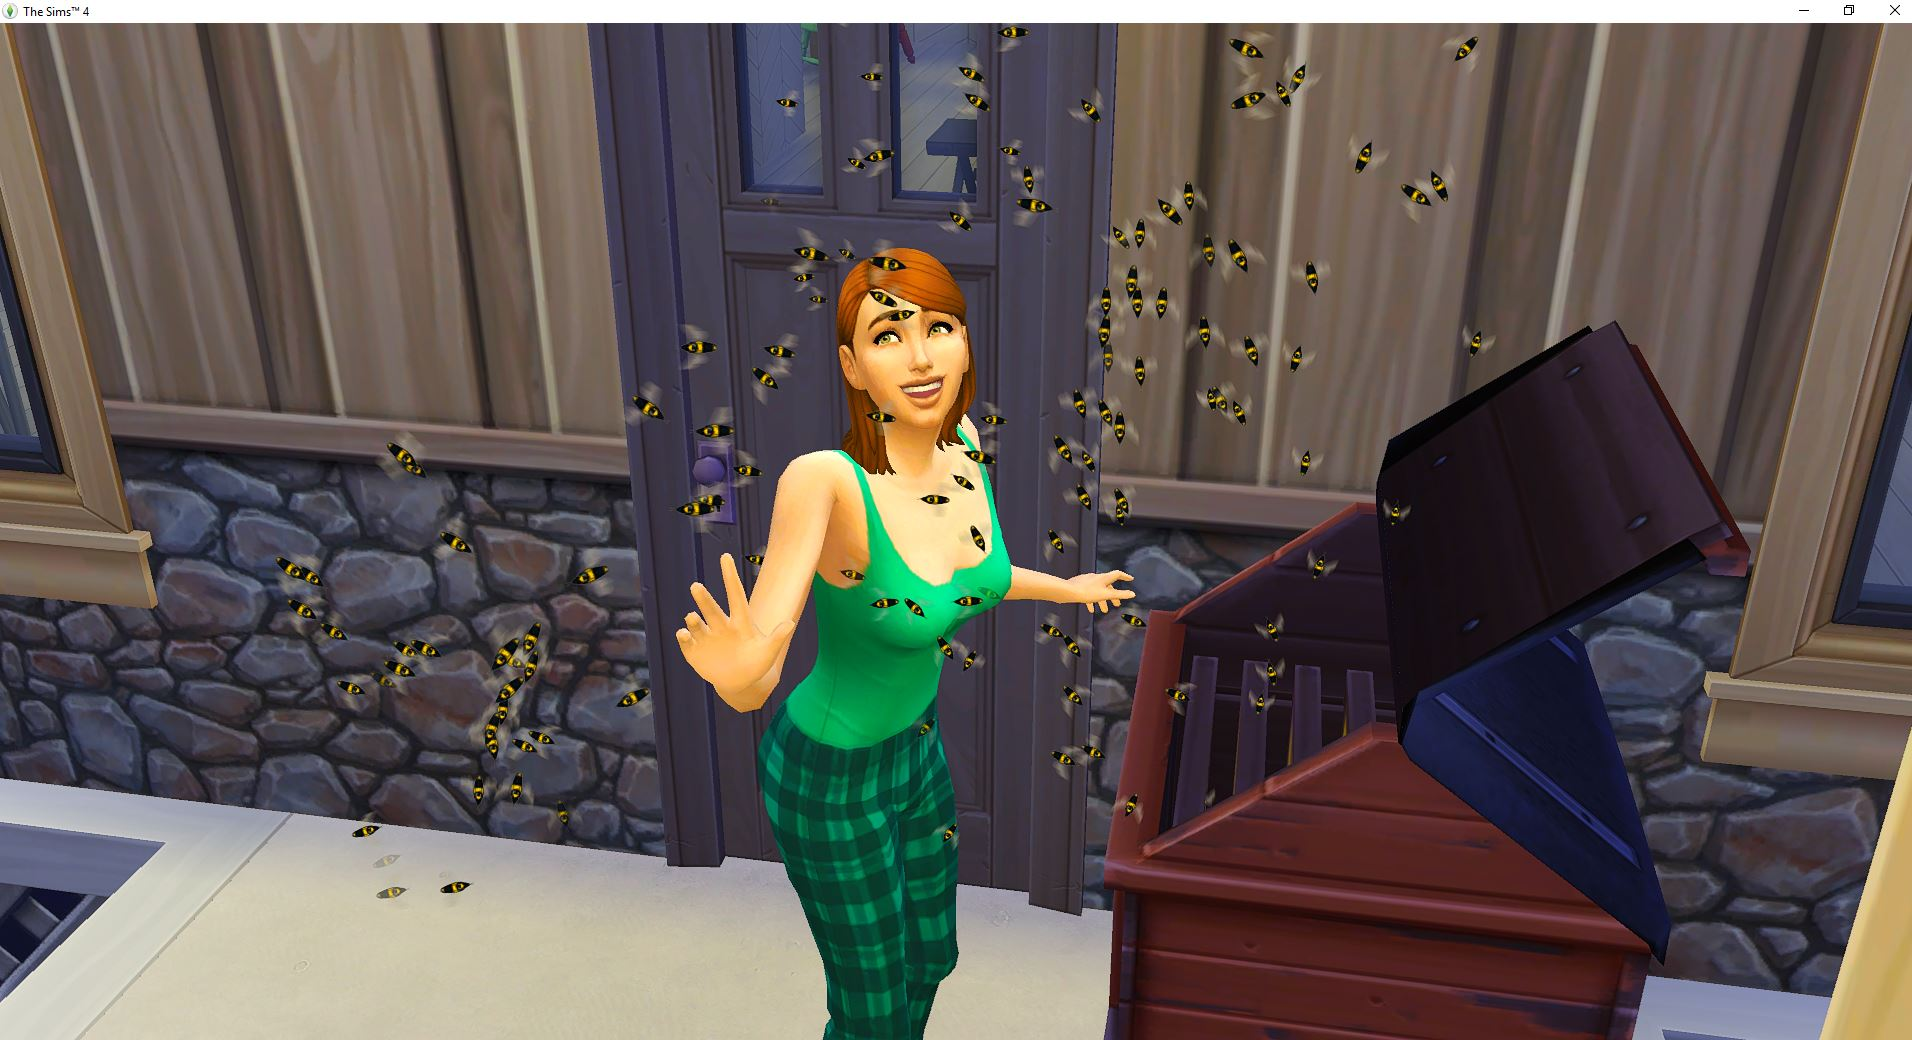 2019-01-06 09_39_45-The Sims™ 4